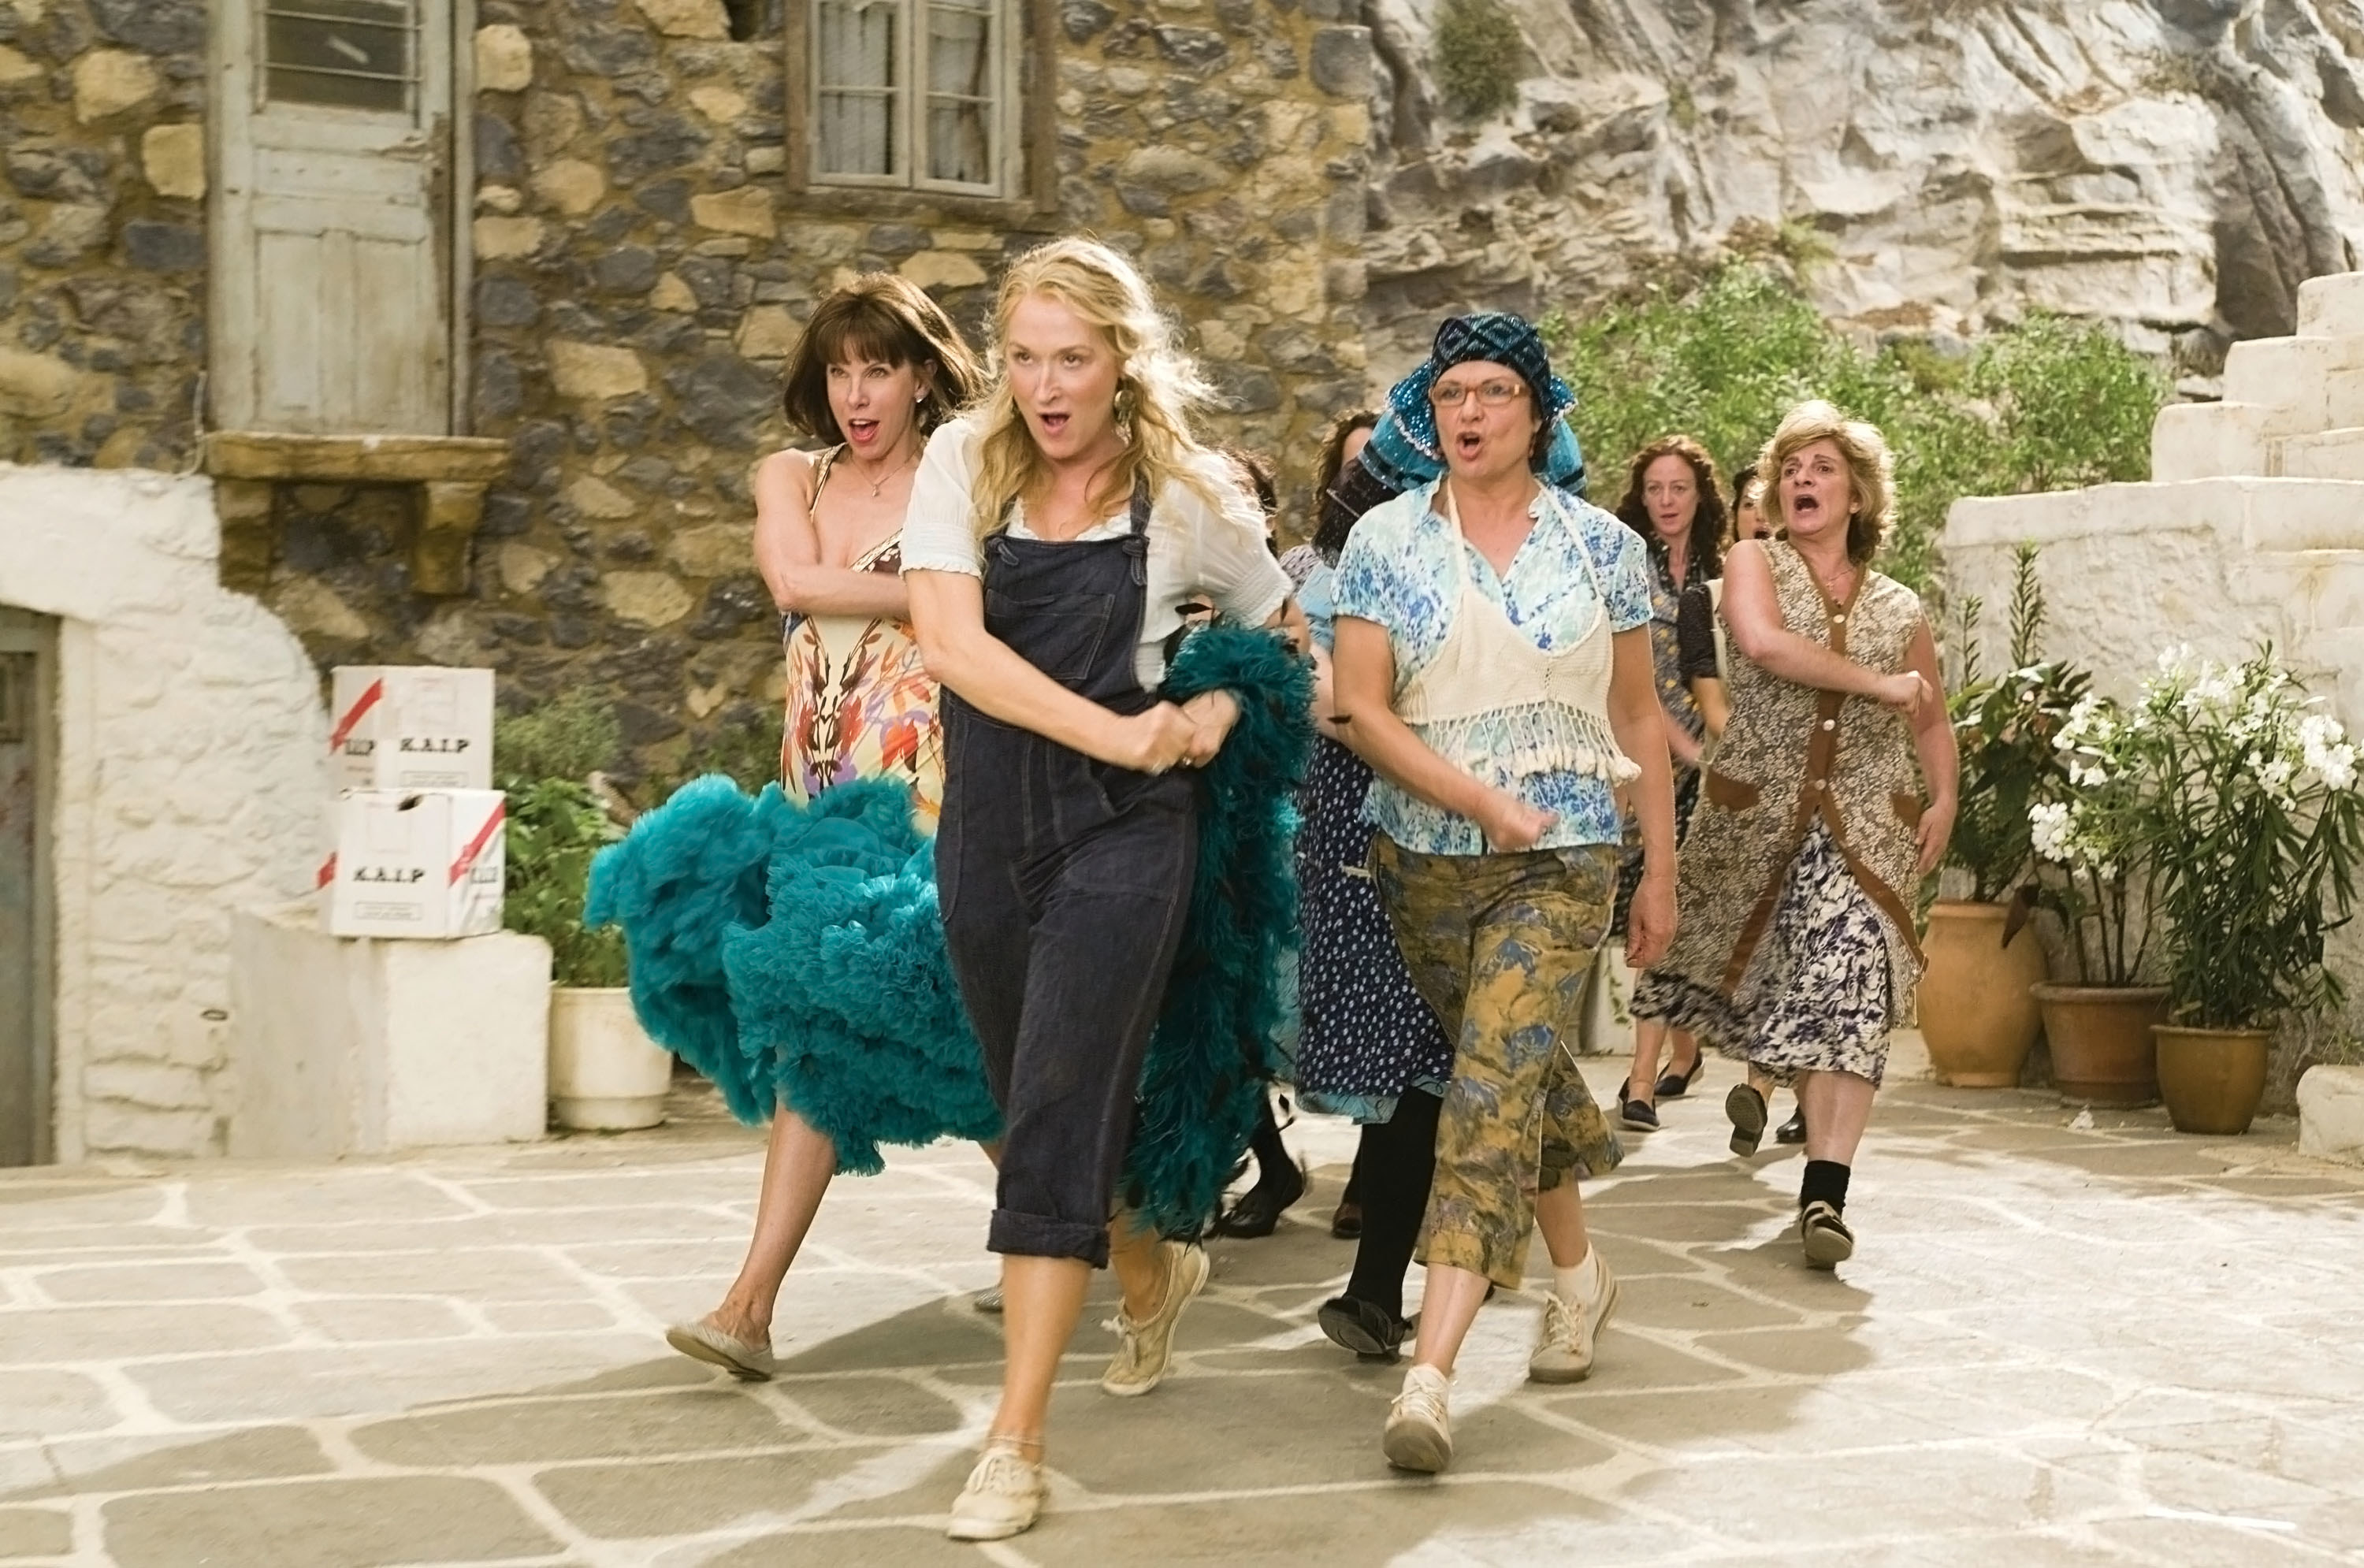 Photo of Meryl Streep and the rest of Mamma Mia! cast walking and singing